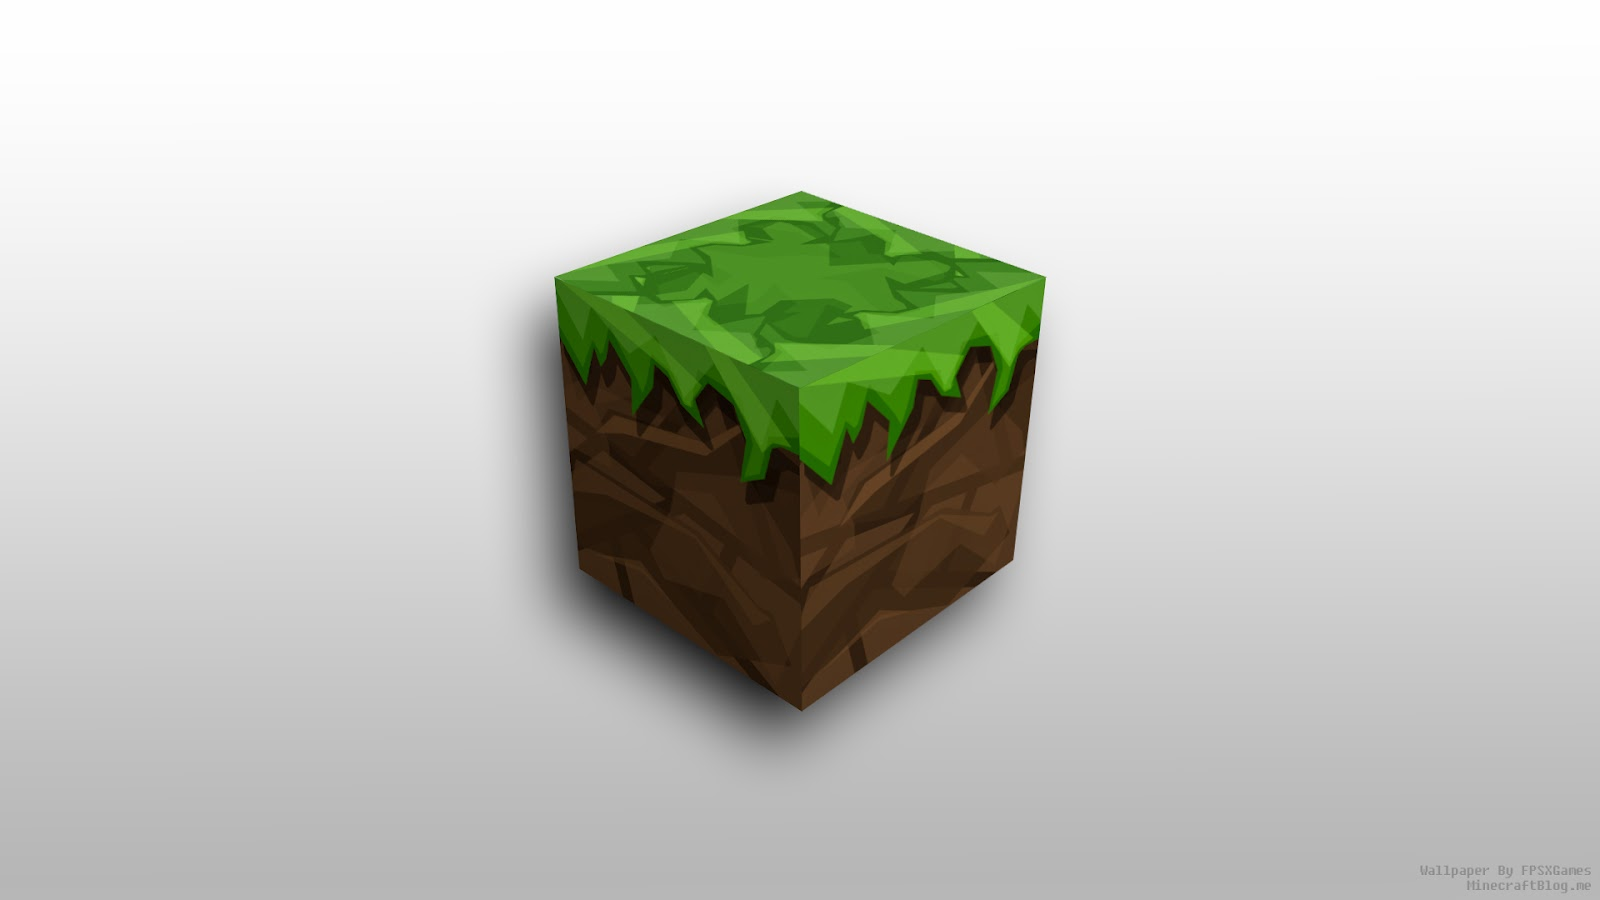 minecraft dirt block desktop wallpaper minecraft pig desktop wallpaper 1600x900